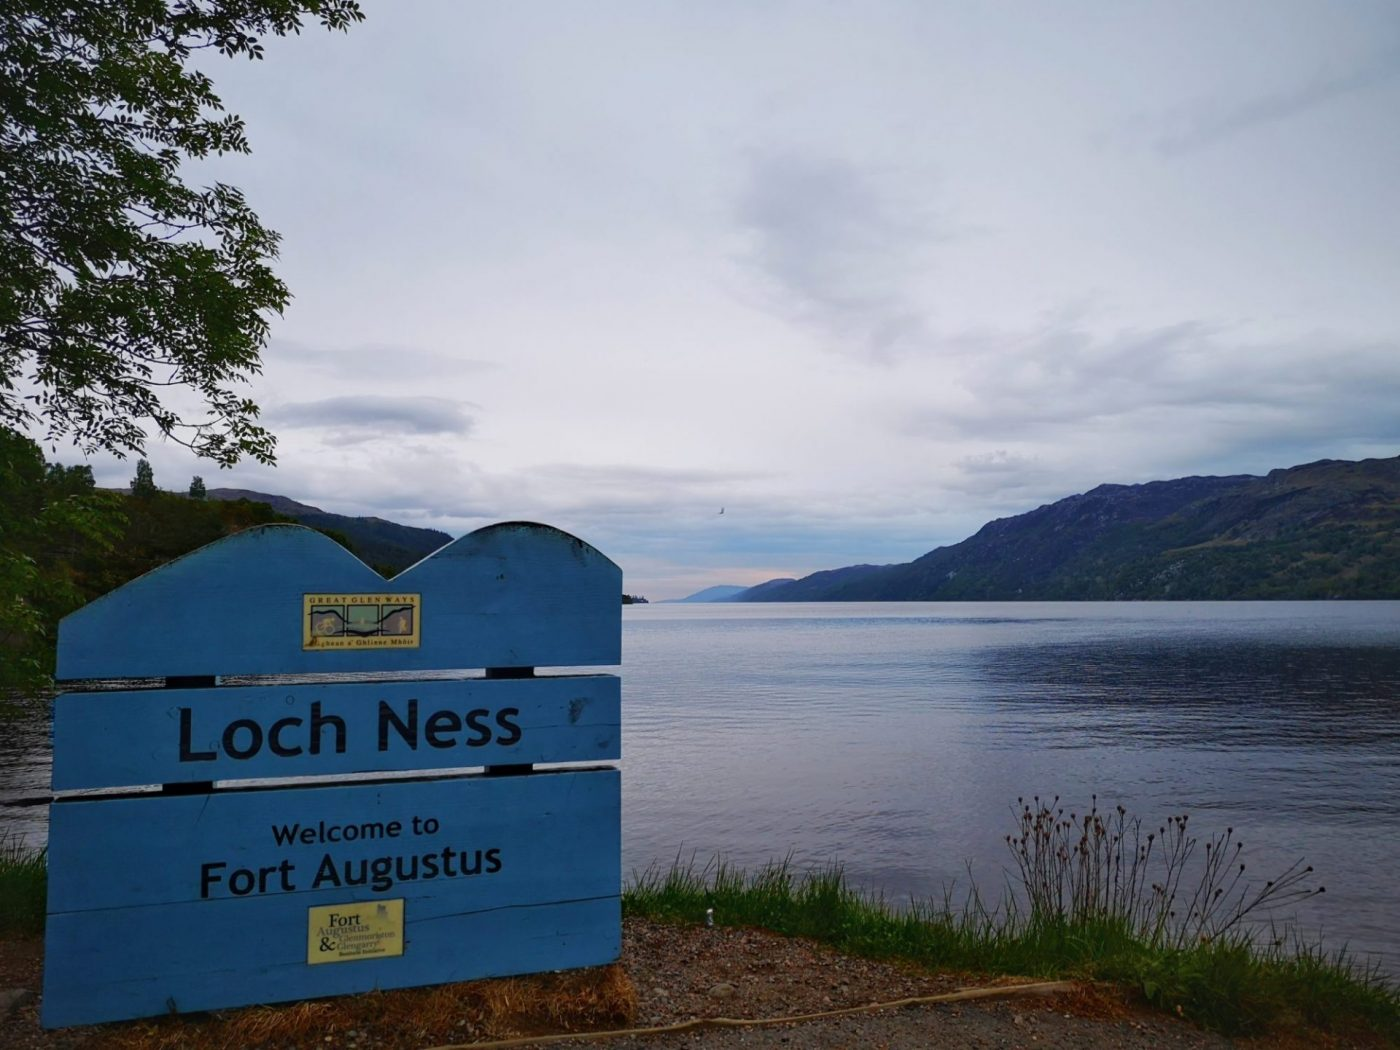 Things to do in Loch Ness Scotland